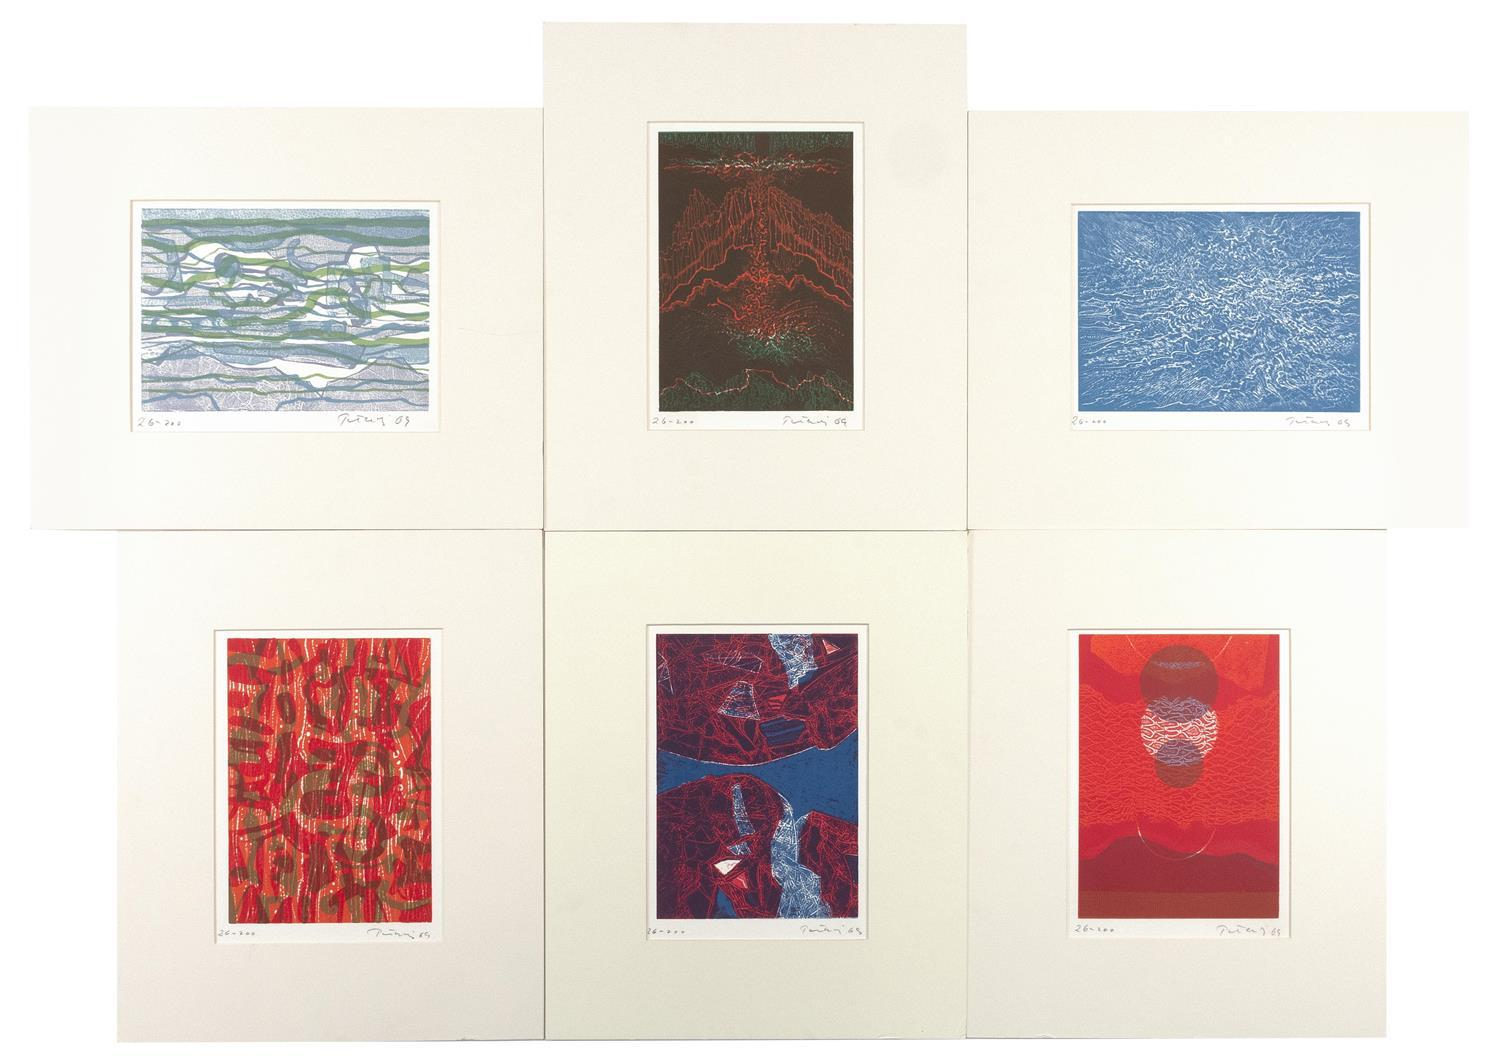 """GABOR PETERDI, Hungary/Connecticut/New York, 1915-2001, Suite of six works, Lithographs on paper, image sizes 7.25"""" x 10"""". Sheet siz..."""